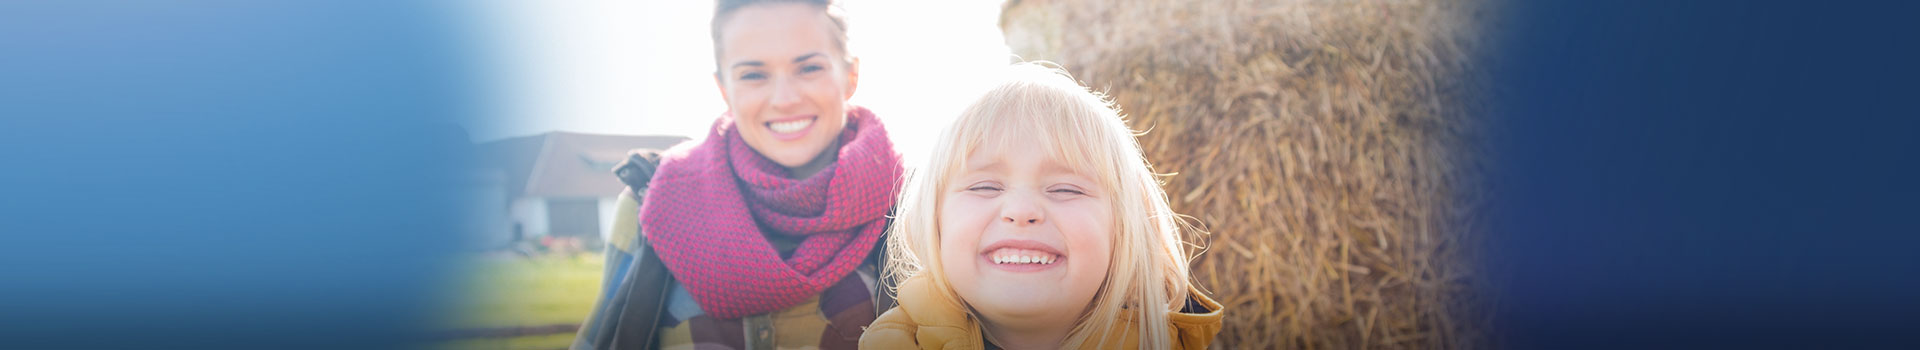 Young mom with daughter smiling outside